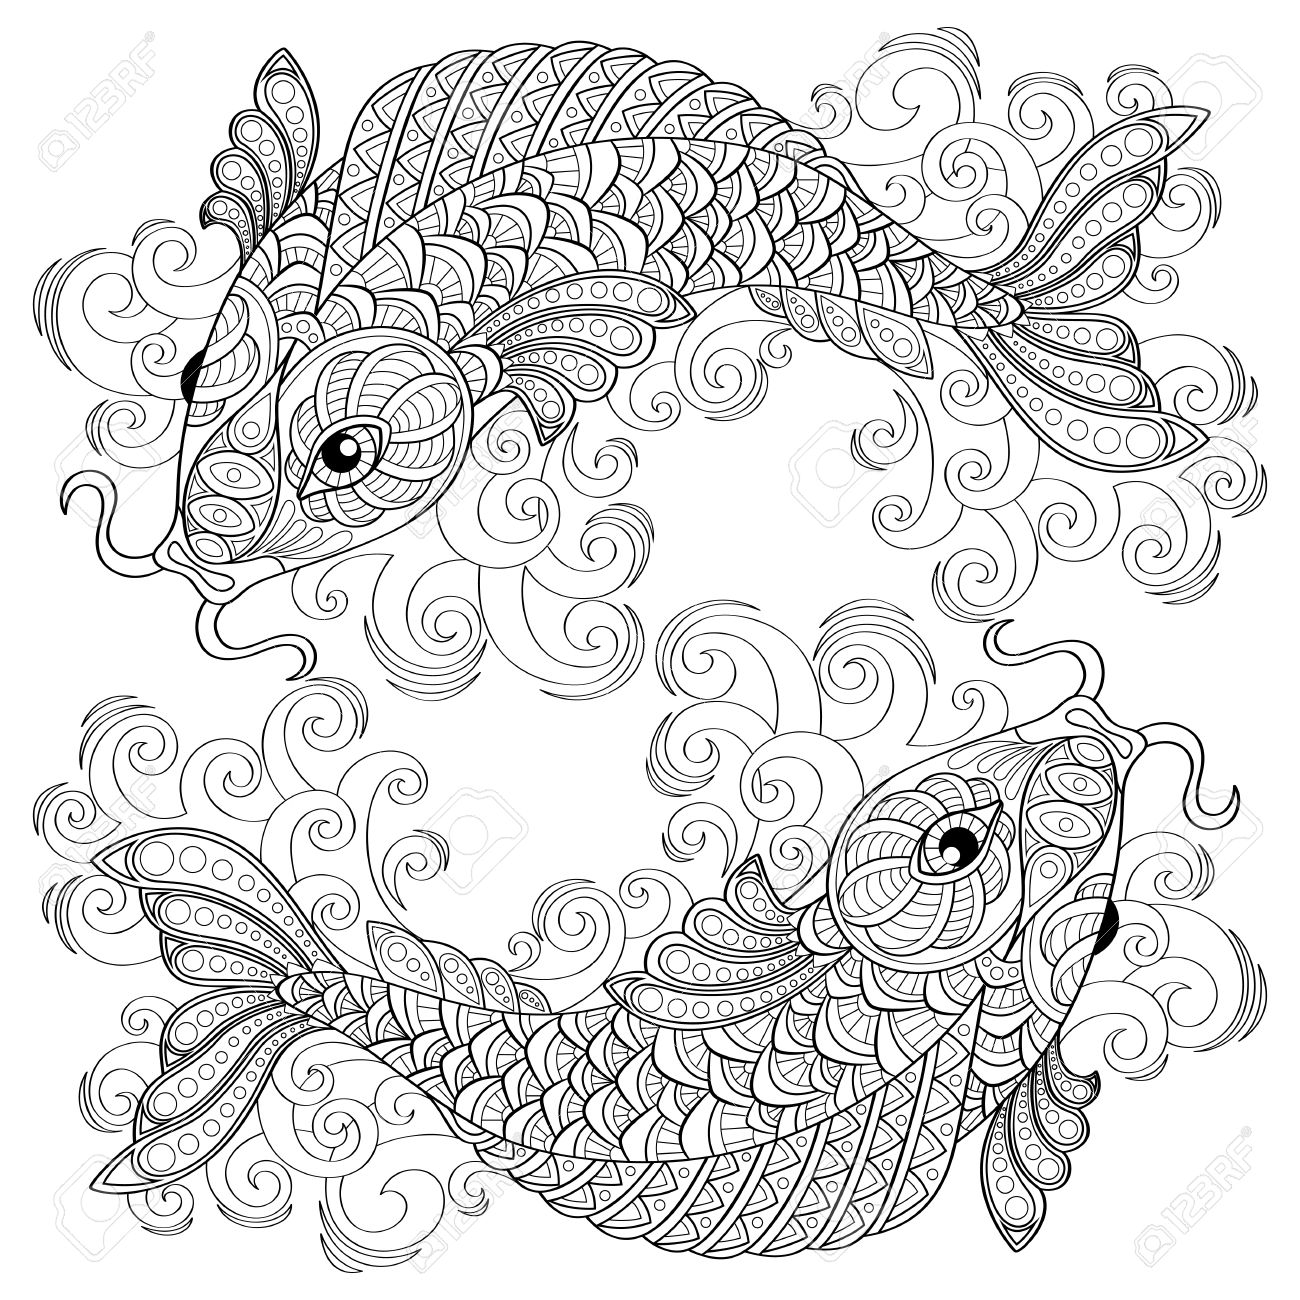 Koi Fish Drawing Step By Step